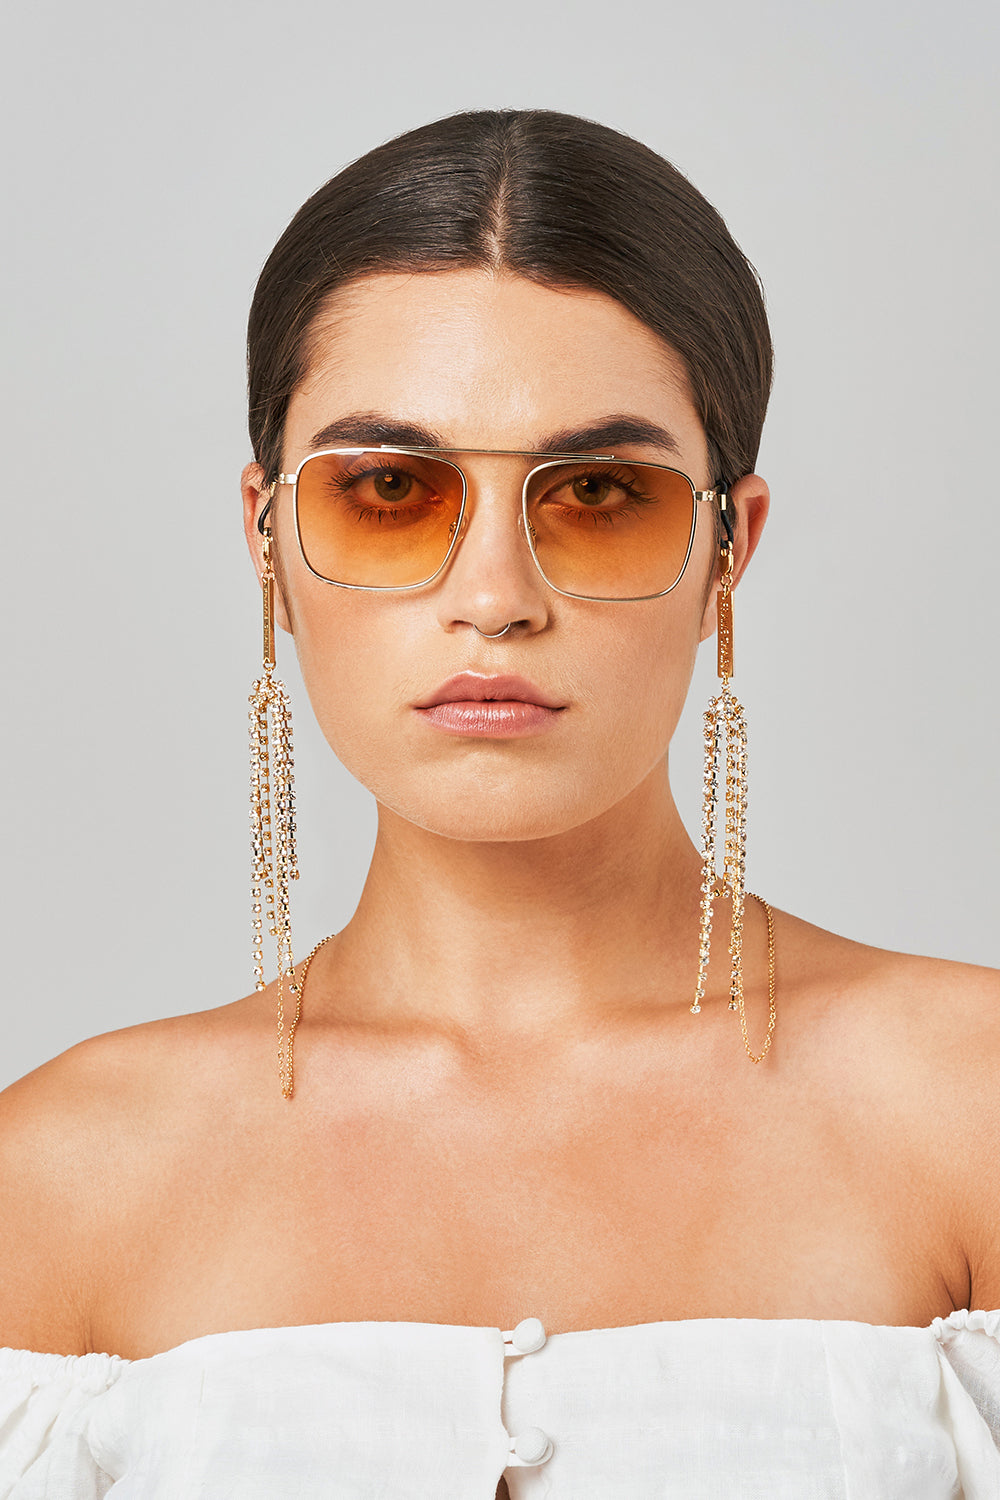 FRAME CHAIN | DISCO WHITE CRYSTAL in YELLOW GOLD | Glasses Chains | Eyewear Chains